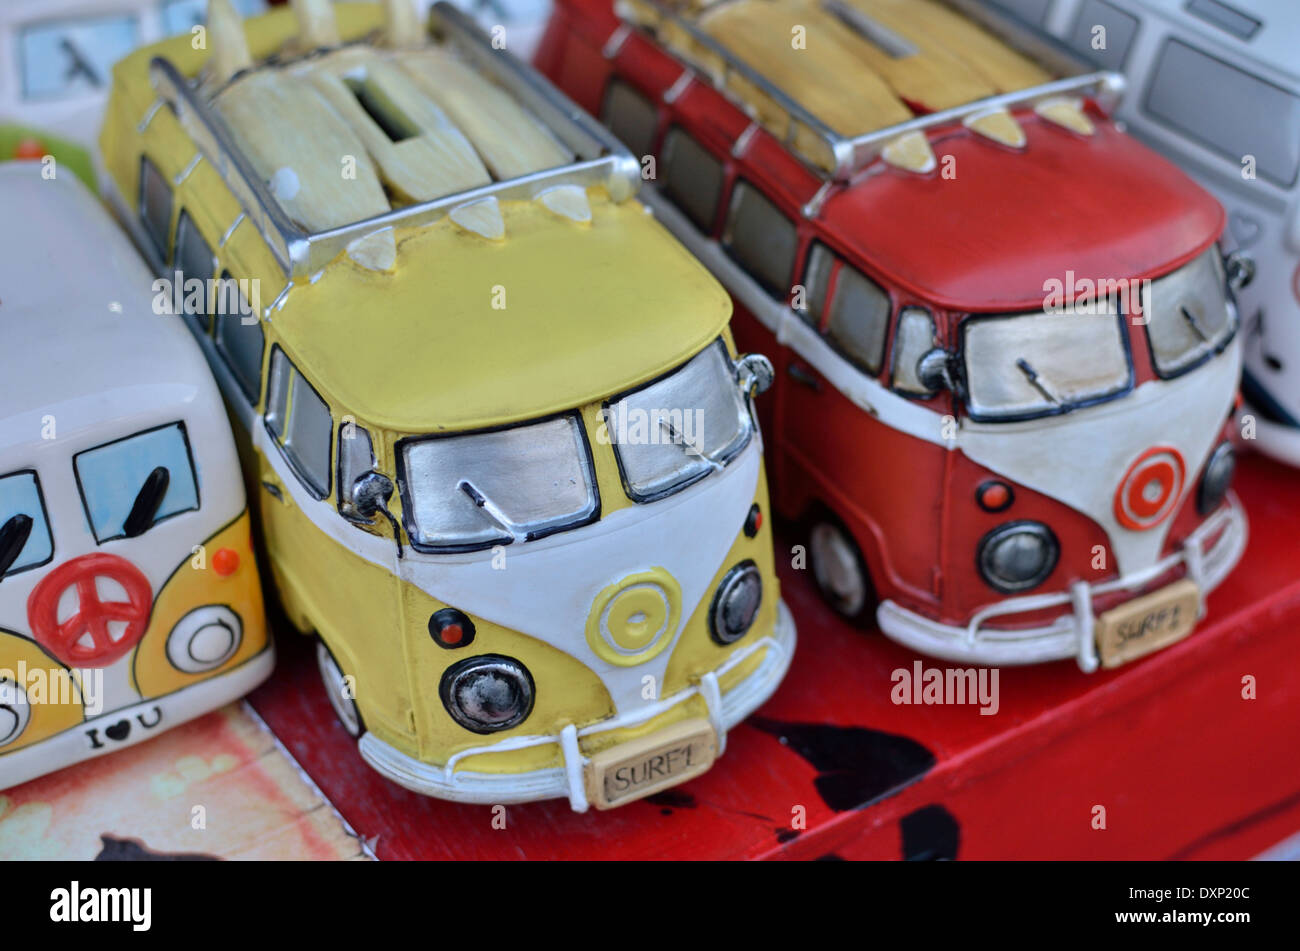 Models of old campervans on a market stall, London, UK - Stock Image